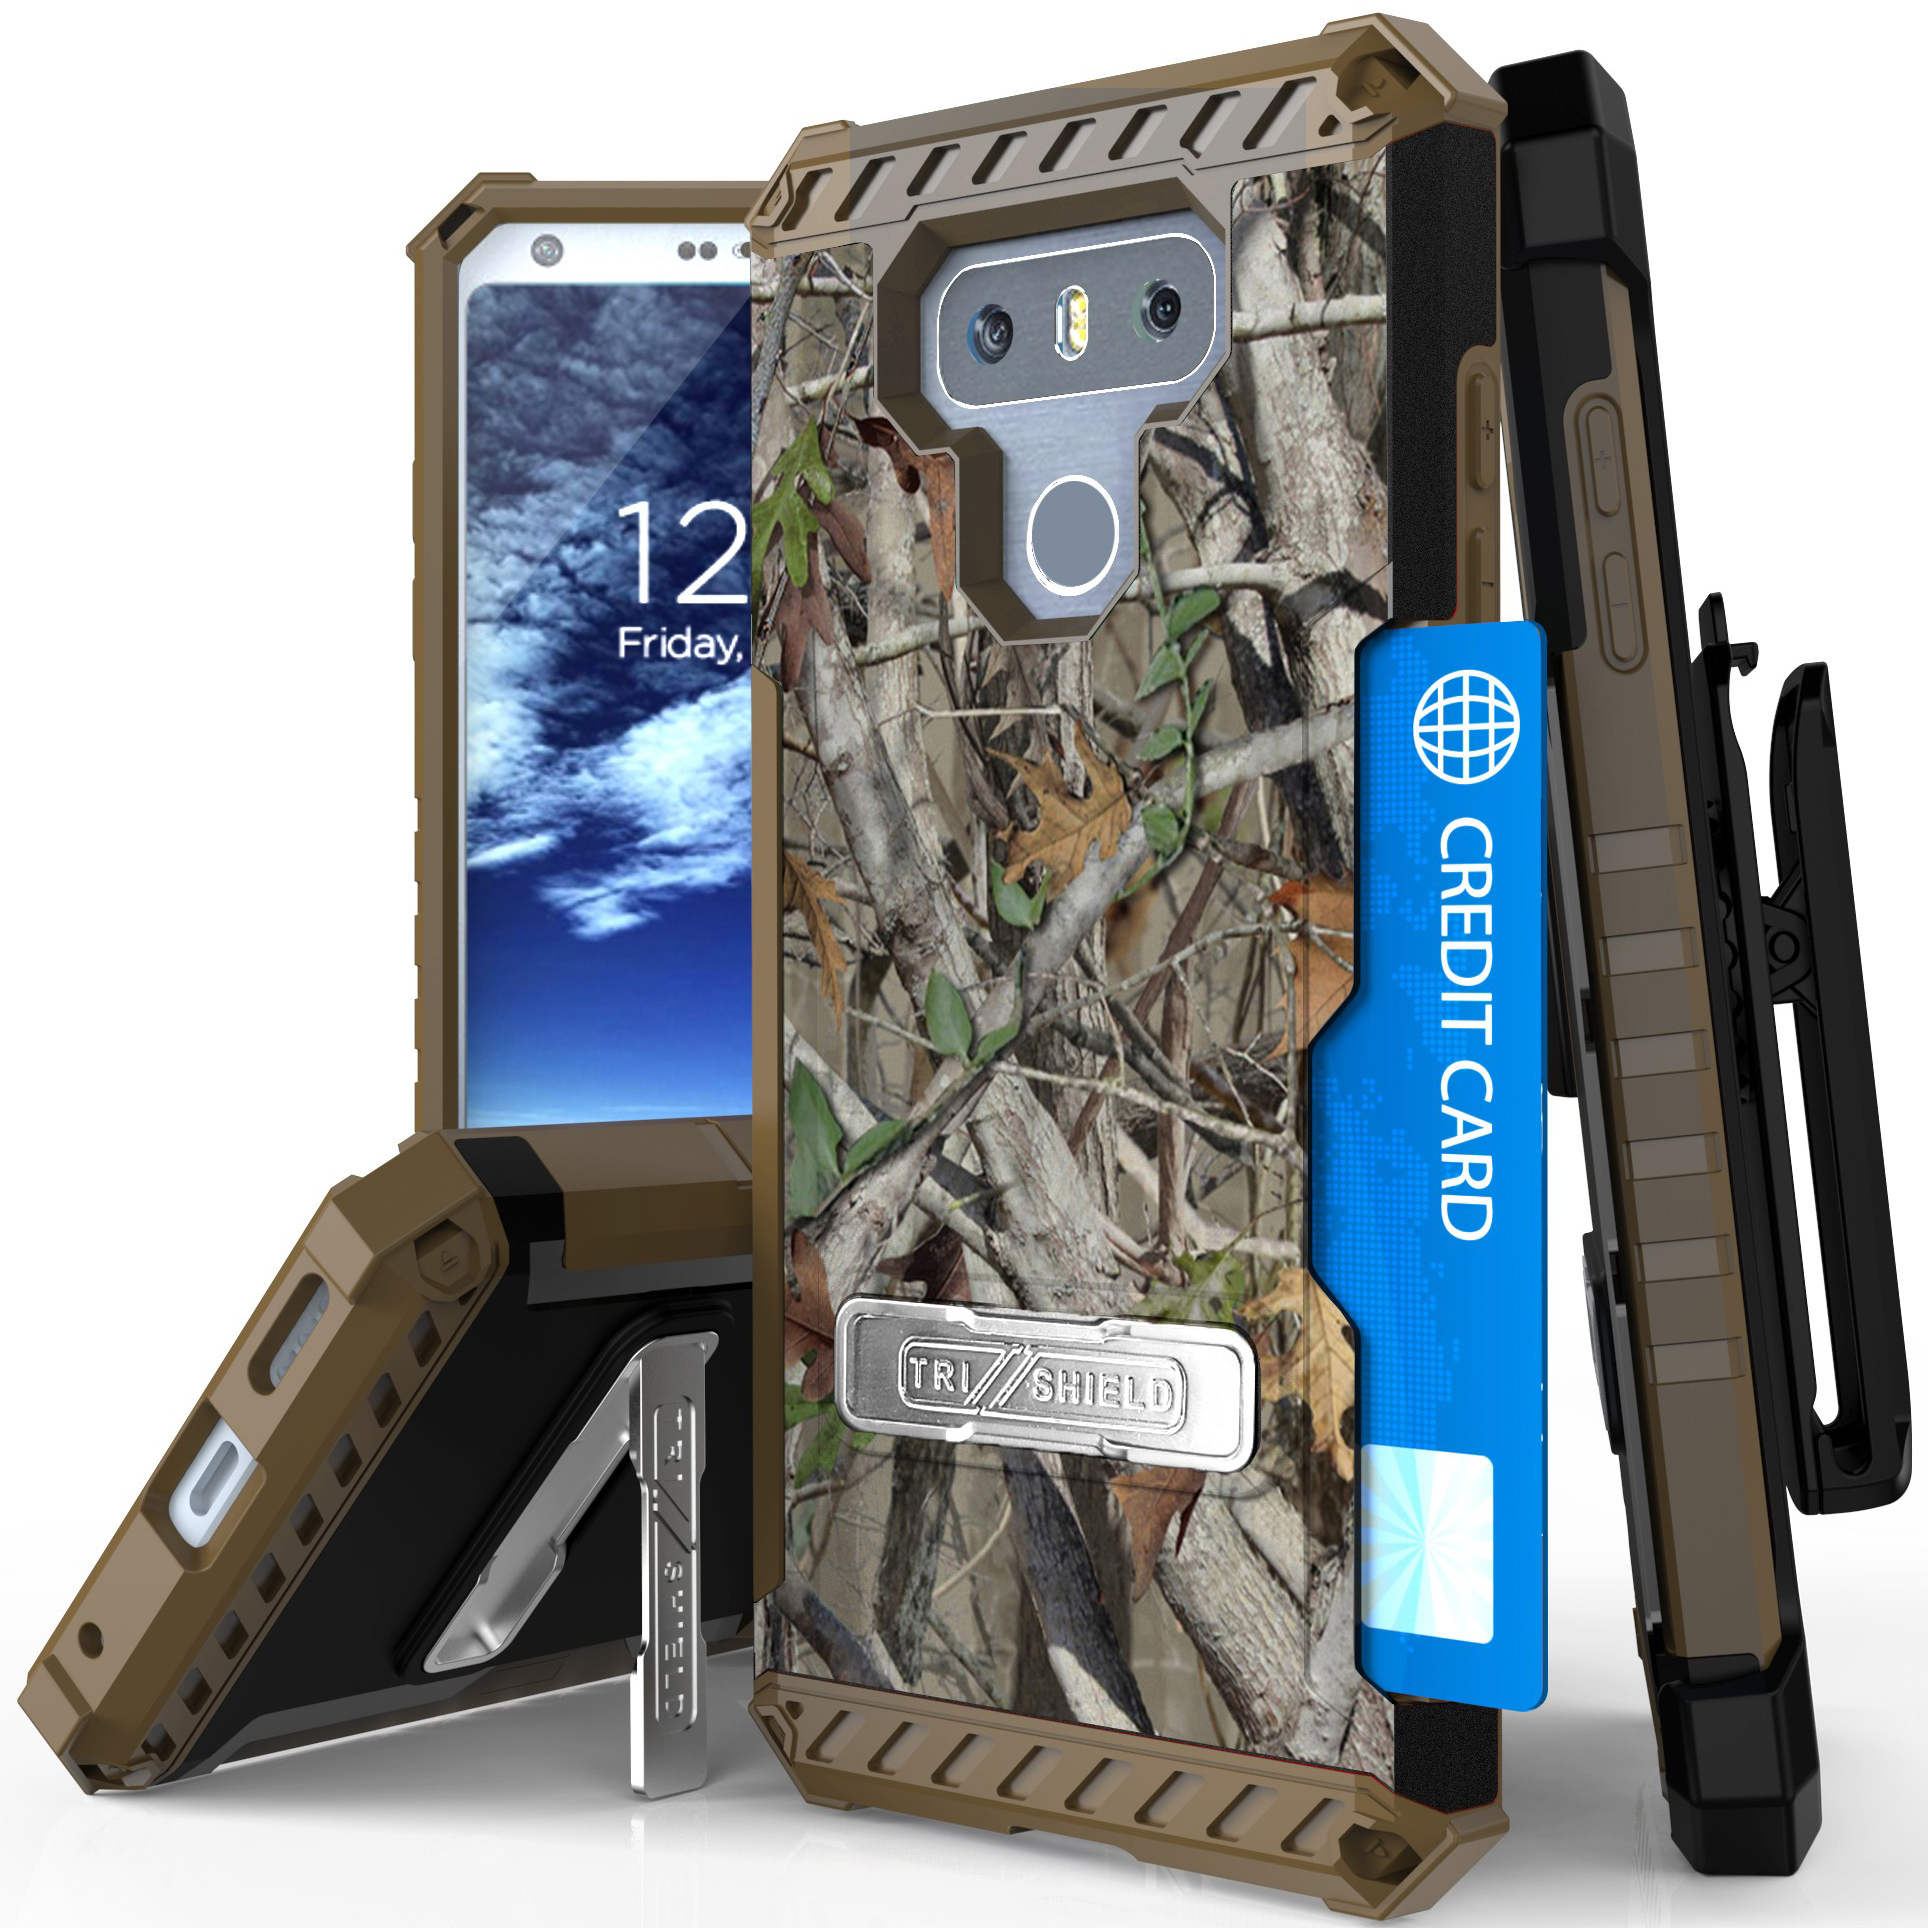 LG G6 Case, AUTUMN TREE REAL WOODS CAMO RUGGED CASE COVER MAGNETIC KICKSTAND + BELT CLIP HOLSTER + SCREEN PROTECTOR + LANYARD + CREDIT CARD WALLET SLOT FOR LG G6 (LG VS988, LS993, H872 H870 H871 H872)